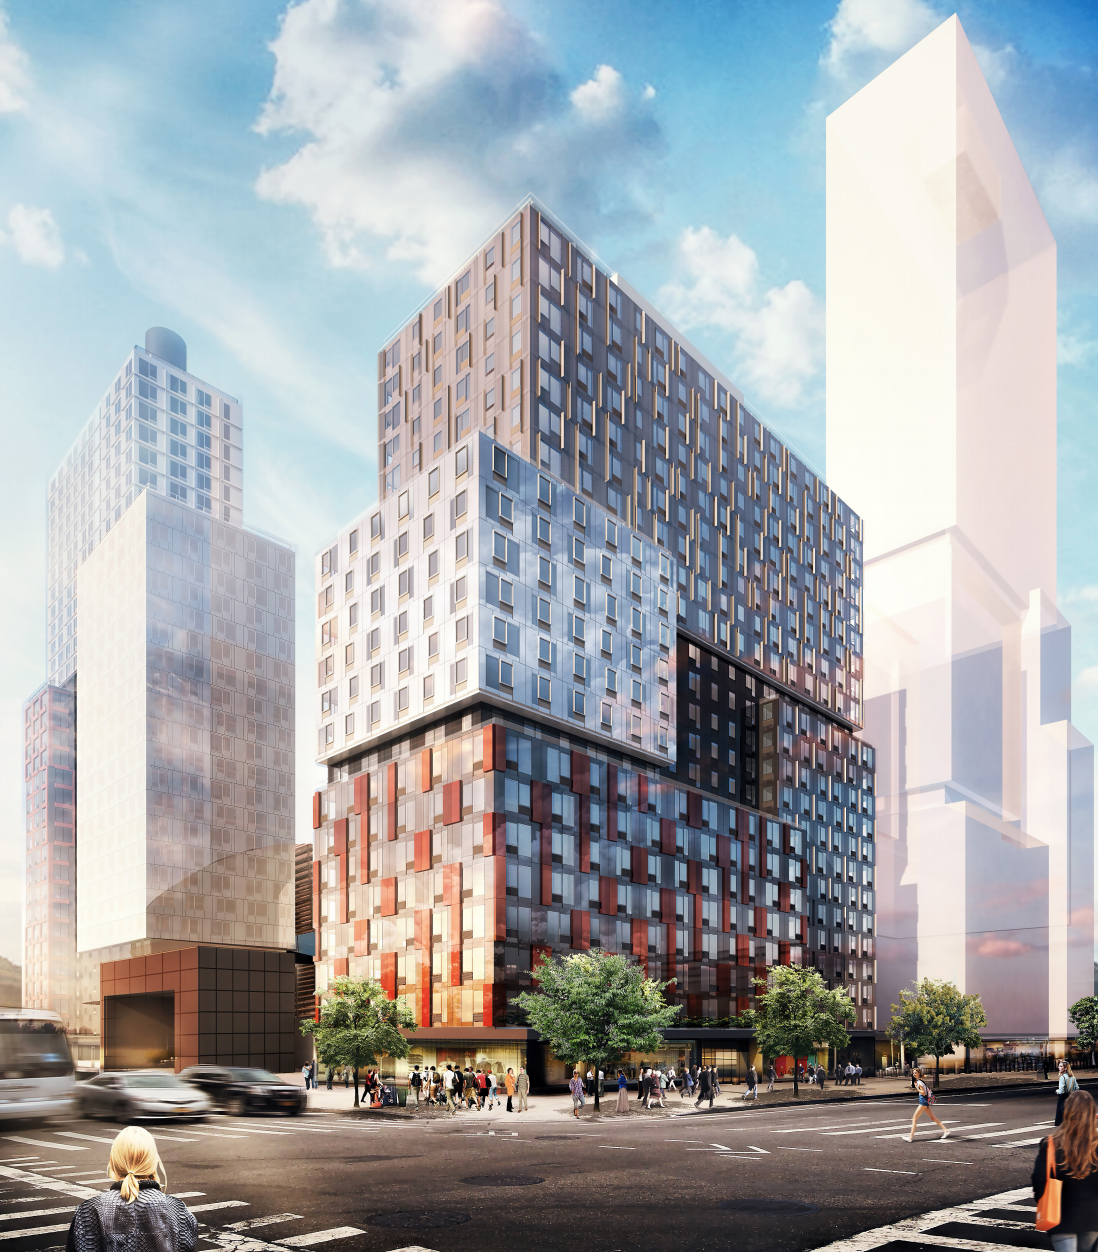 38 Sixth Avenue, rendering by SHoP Architects